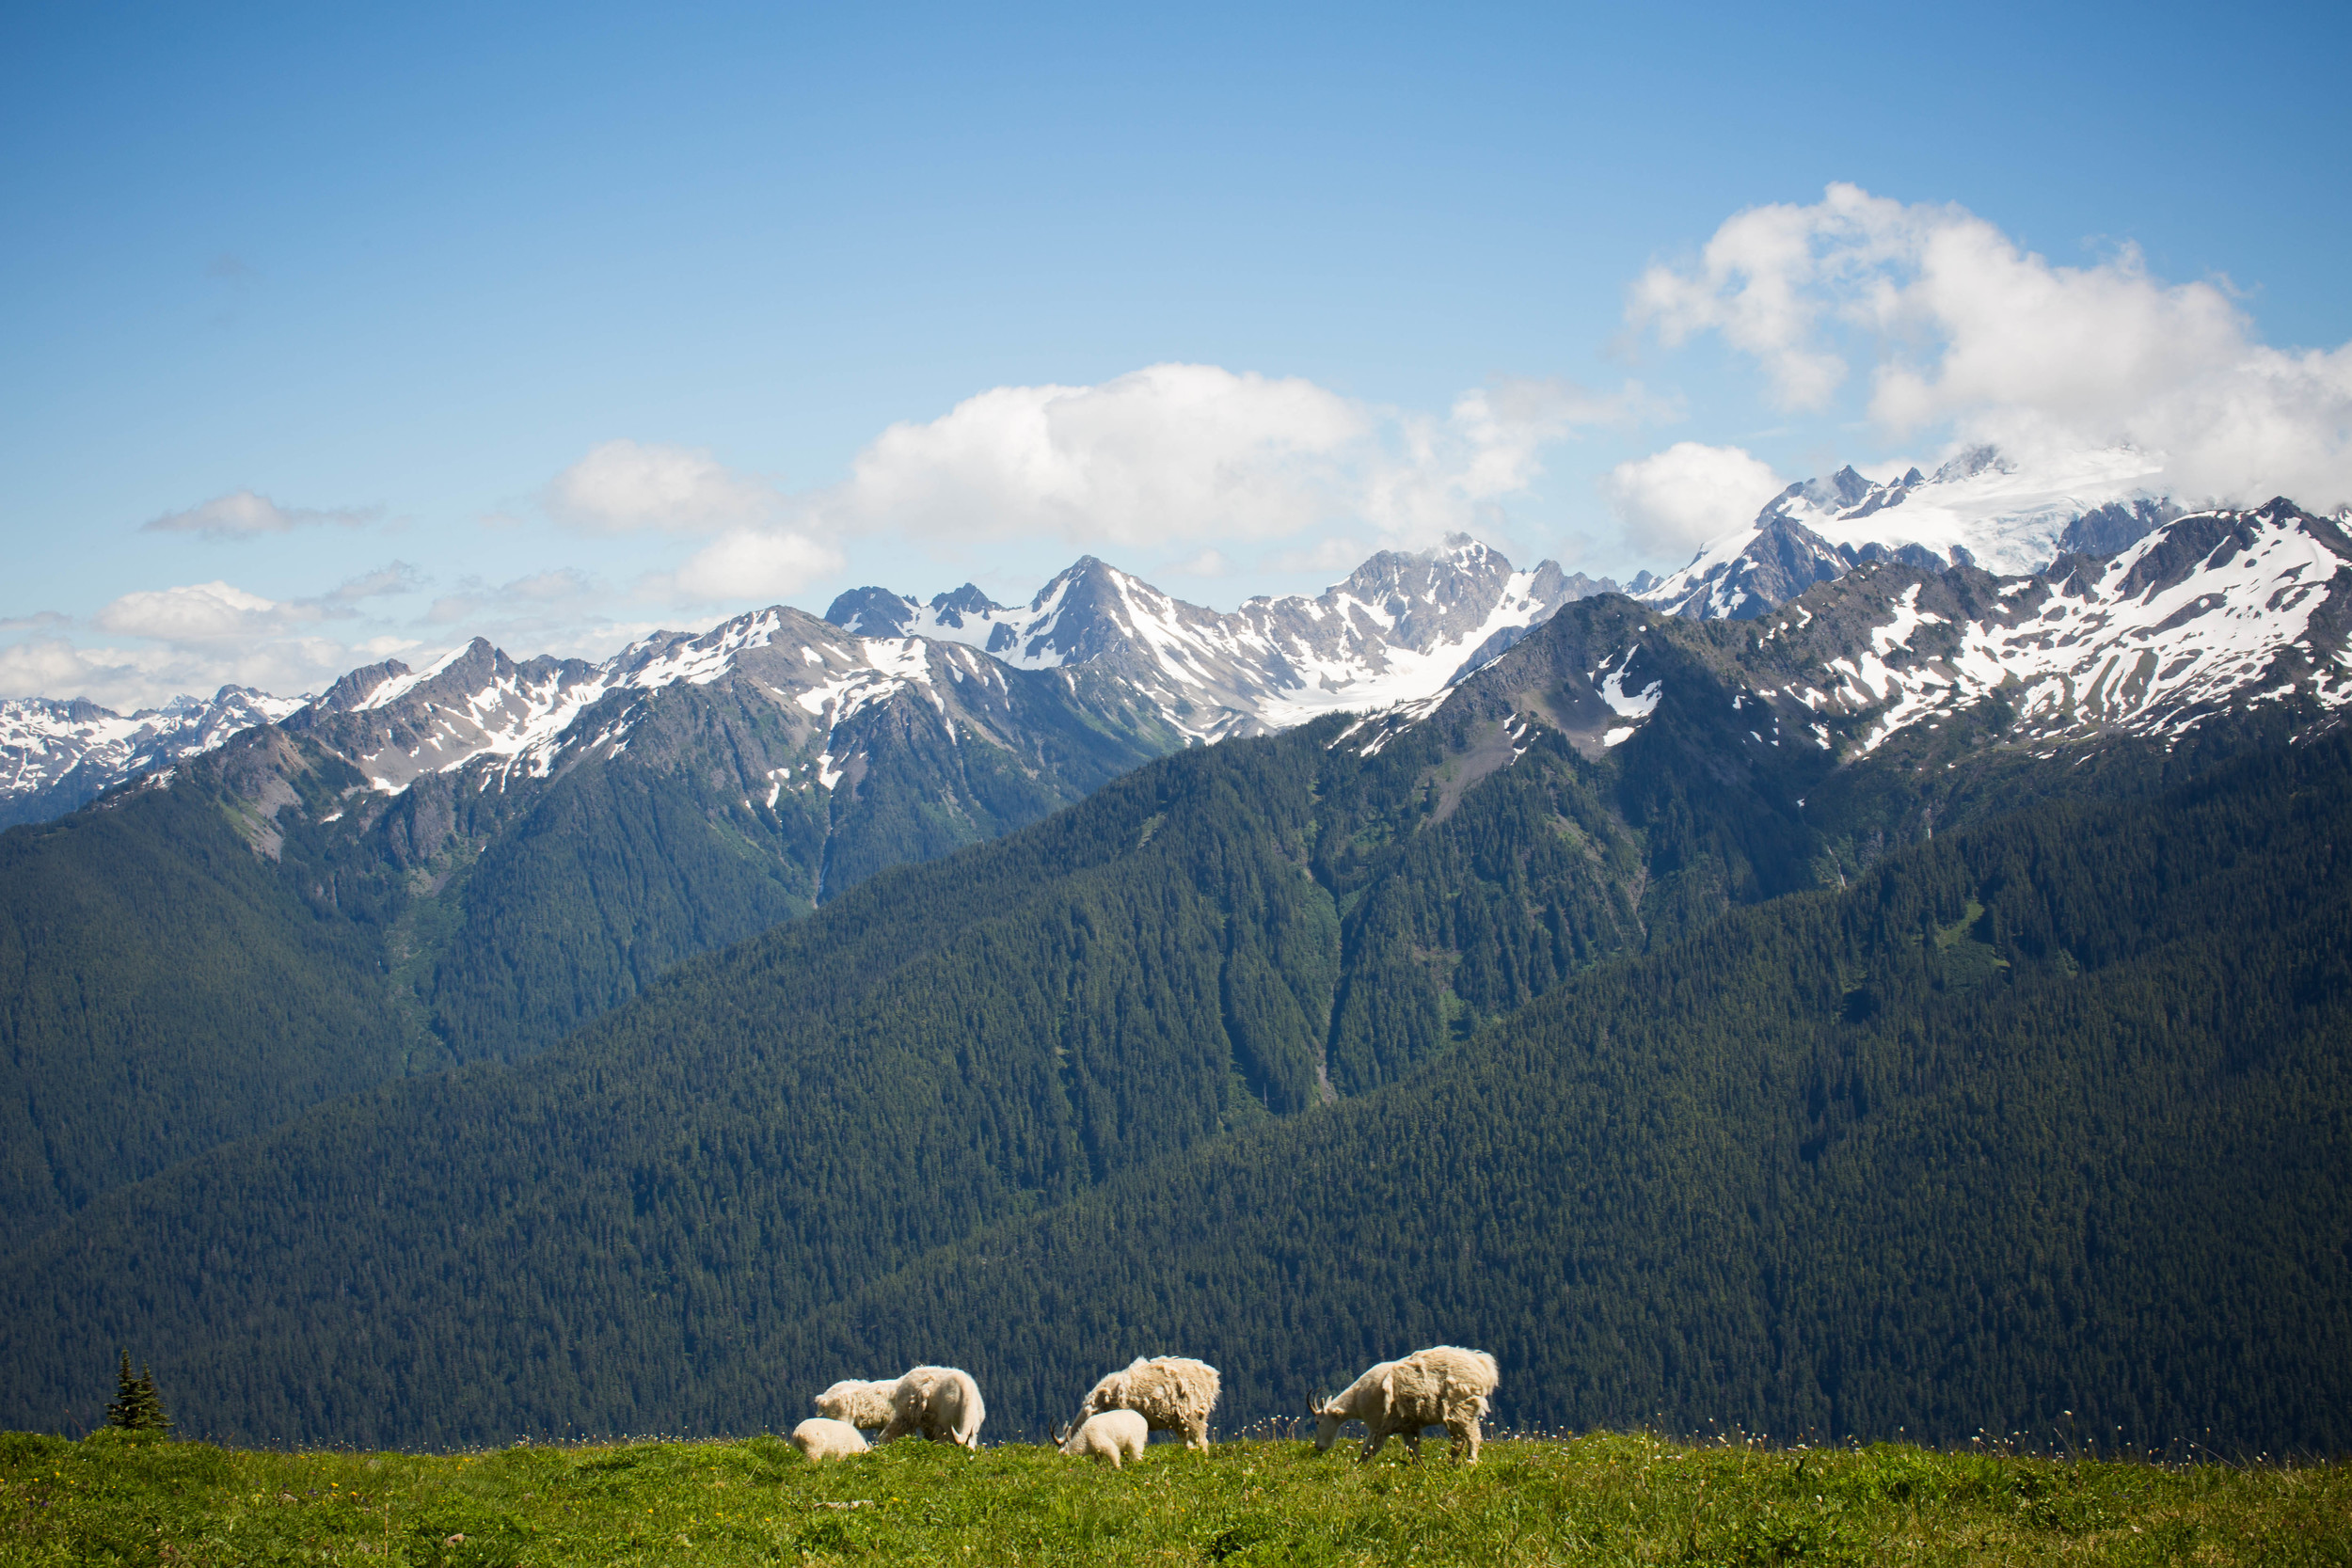 View of the goats and the mountains after the fog lifted.